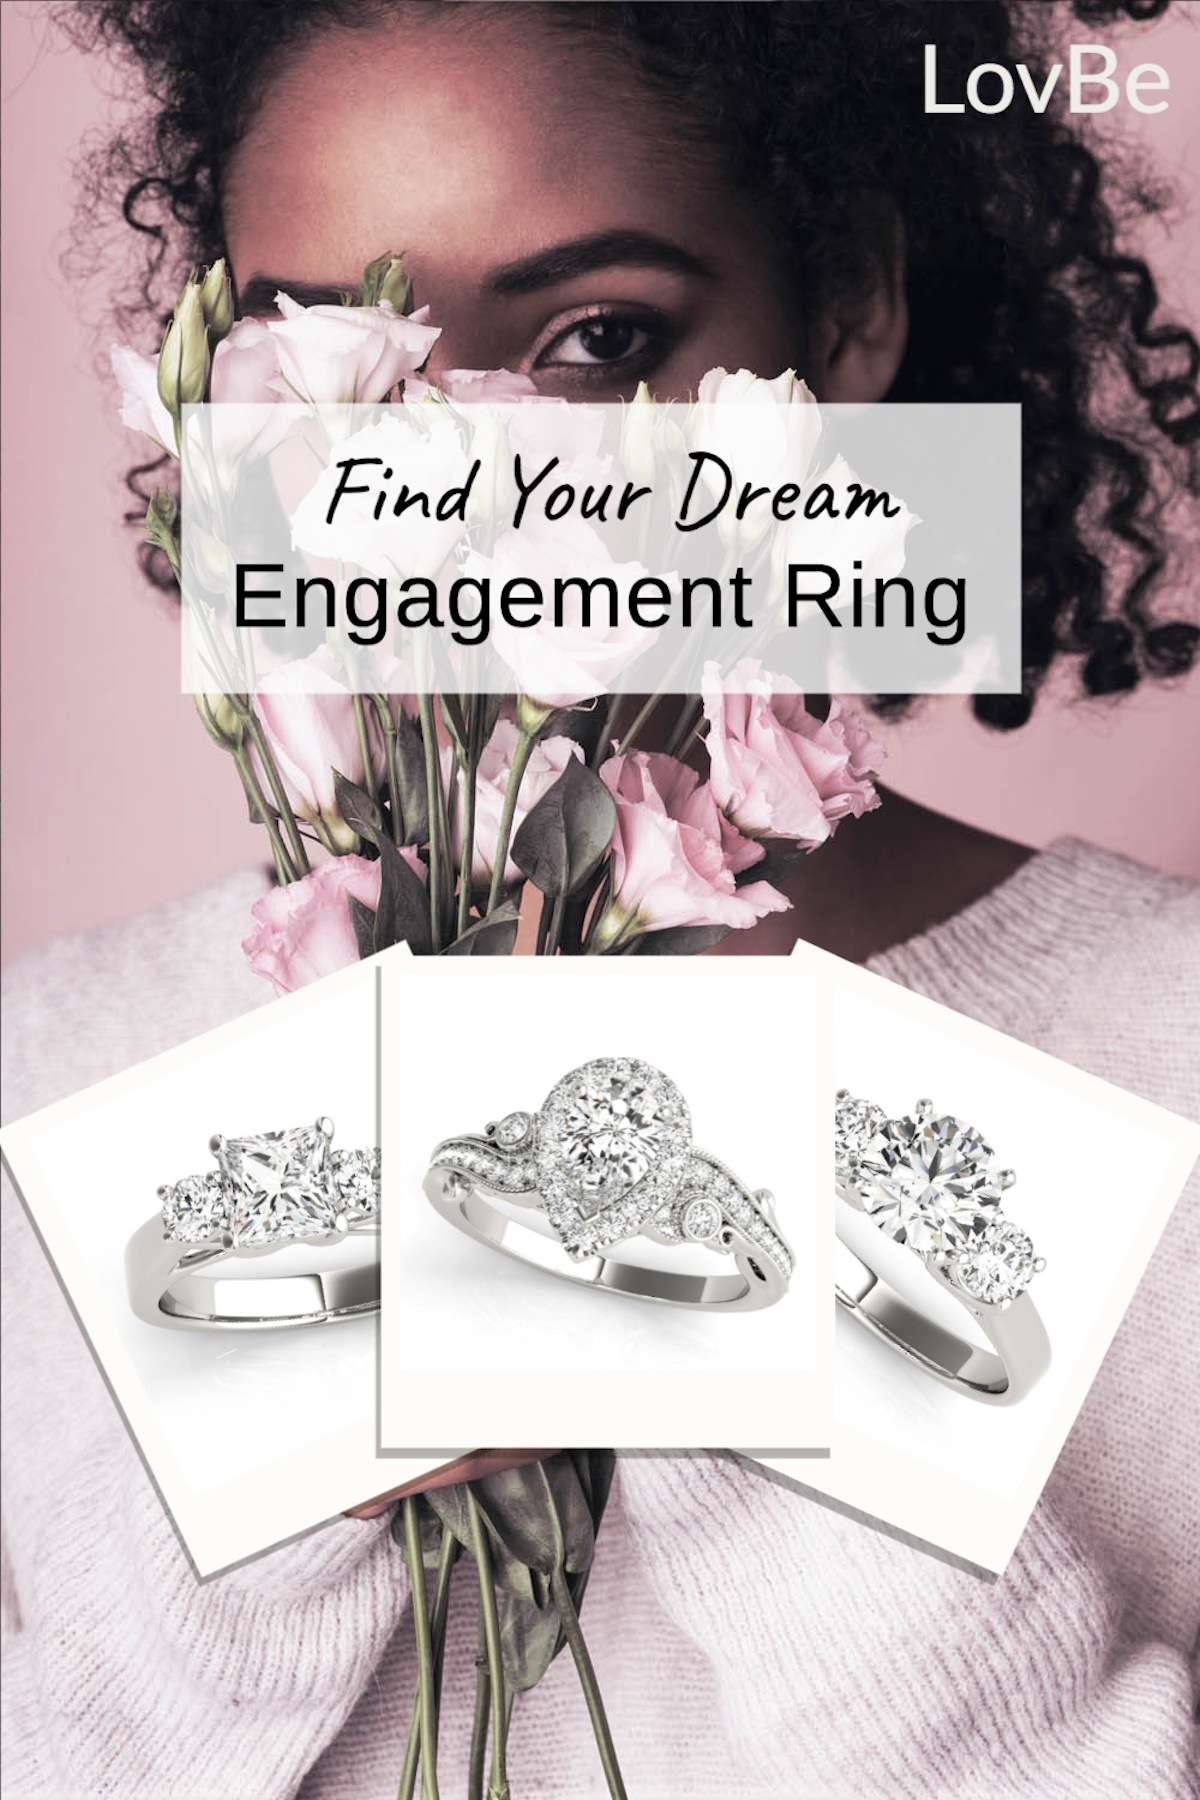 Find Your Dream Ring Just in Time for Engagement Season with LovBe